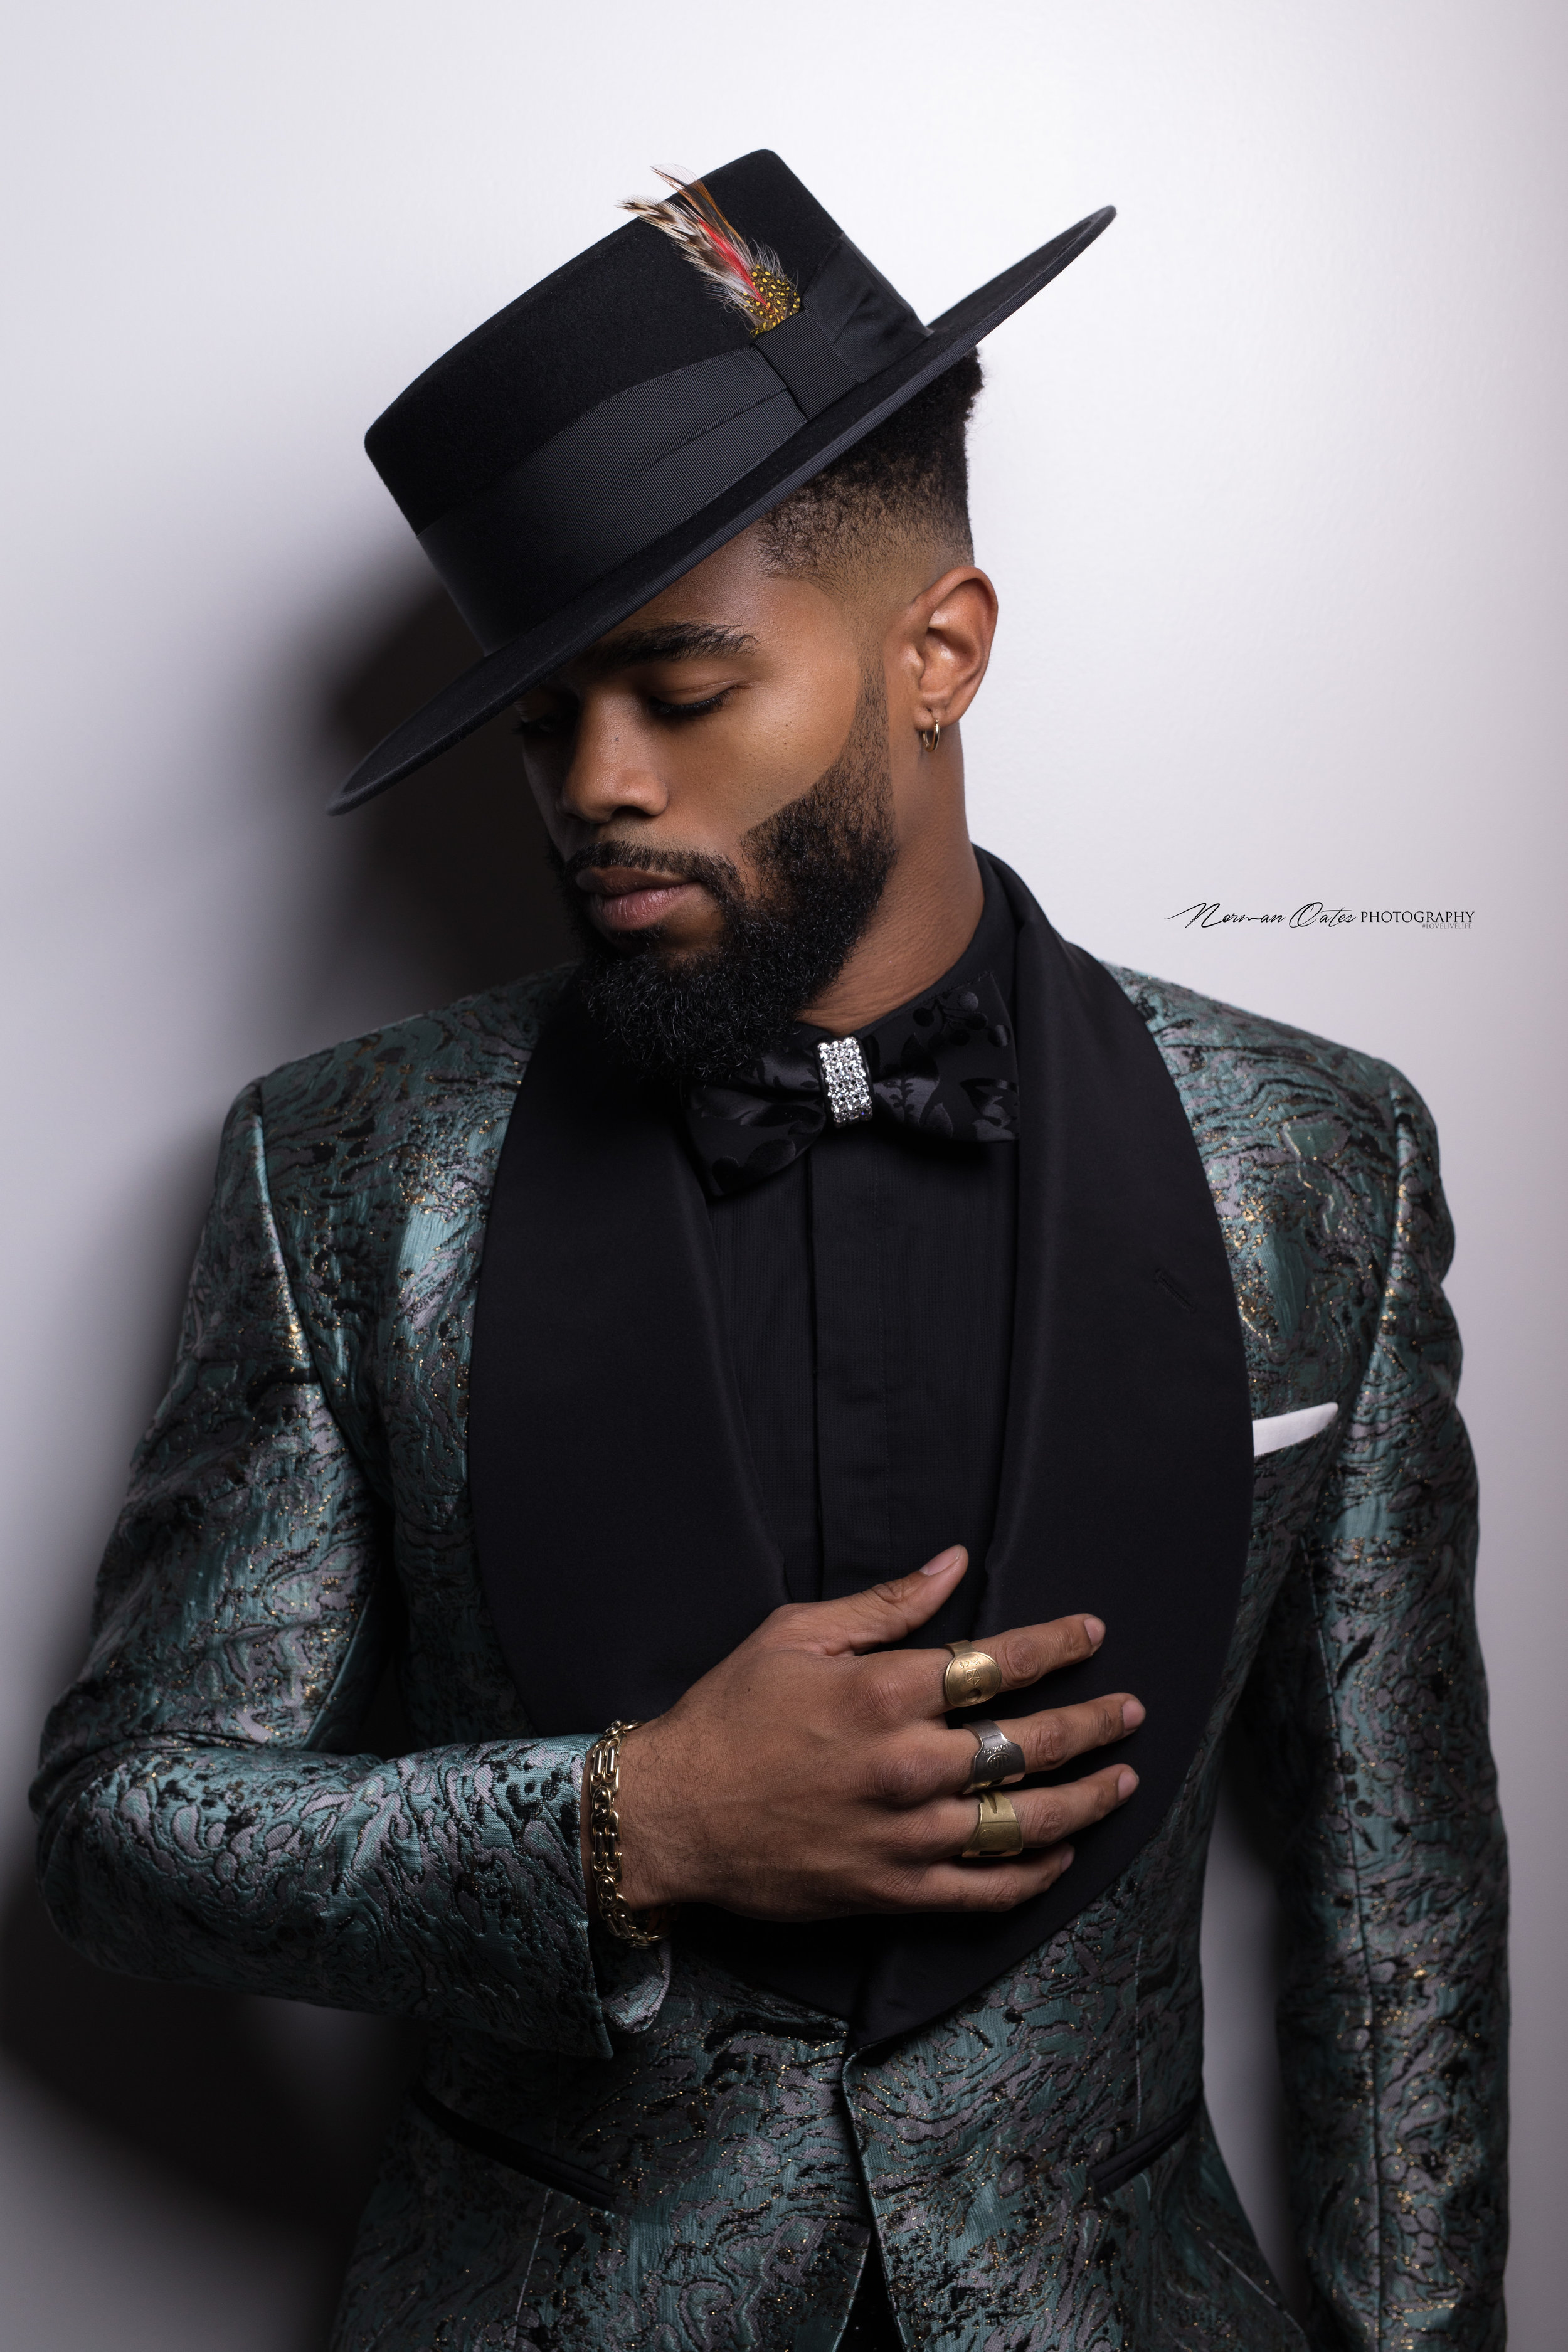 """Model wearing the """"Wayne"""" bow tie by D. Leak Bow-Ties. Photo: Norman Oates Photography"""